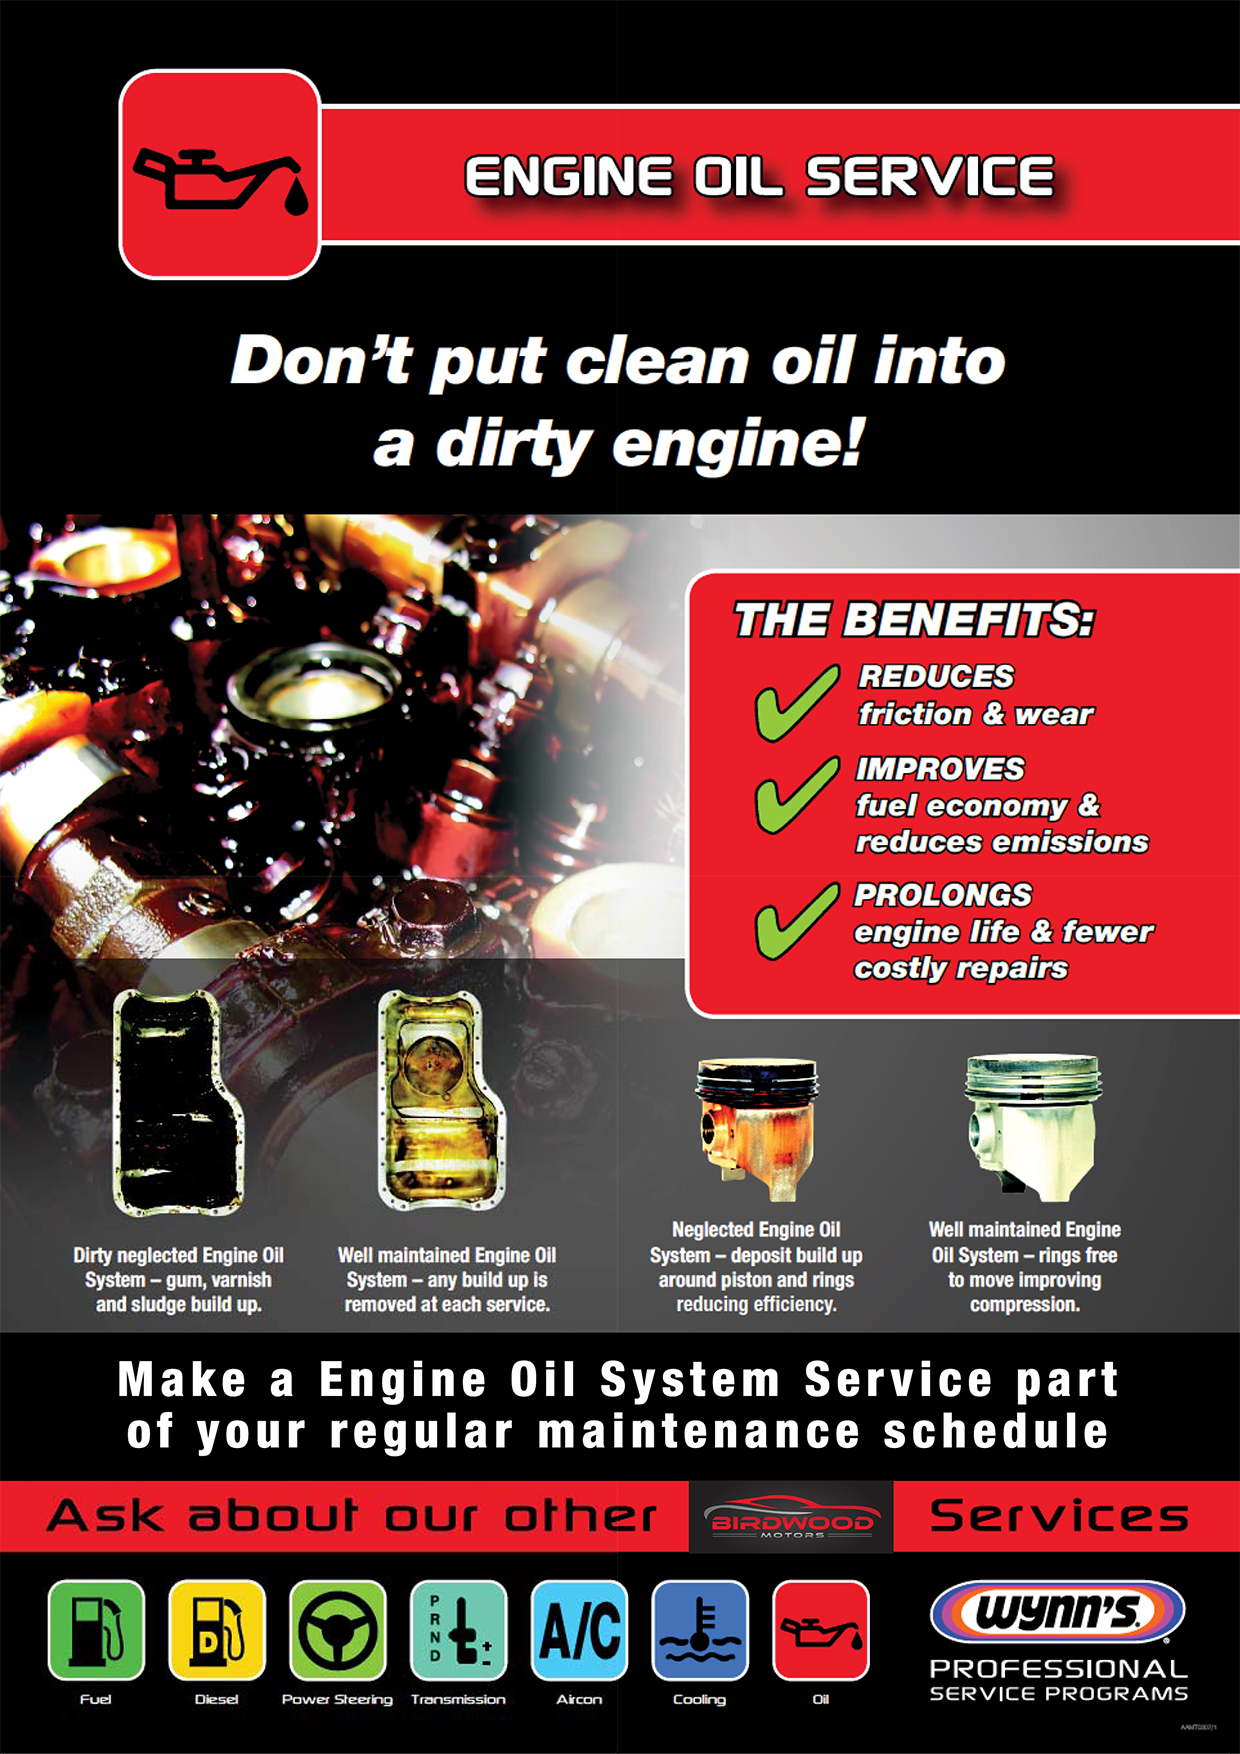 Engine Oil Service Poster (Birdwood)